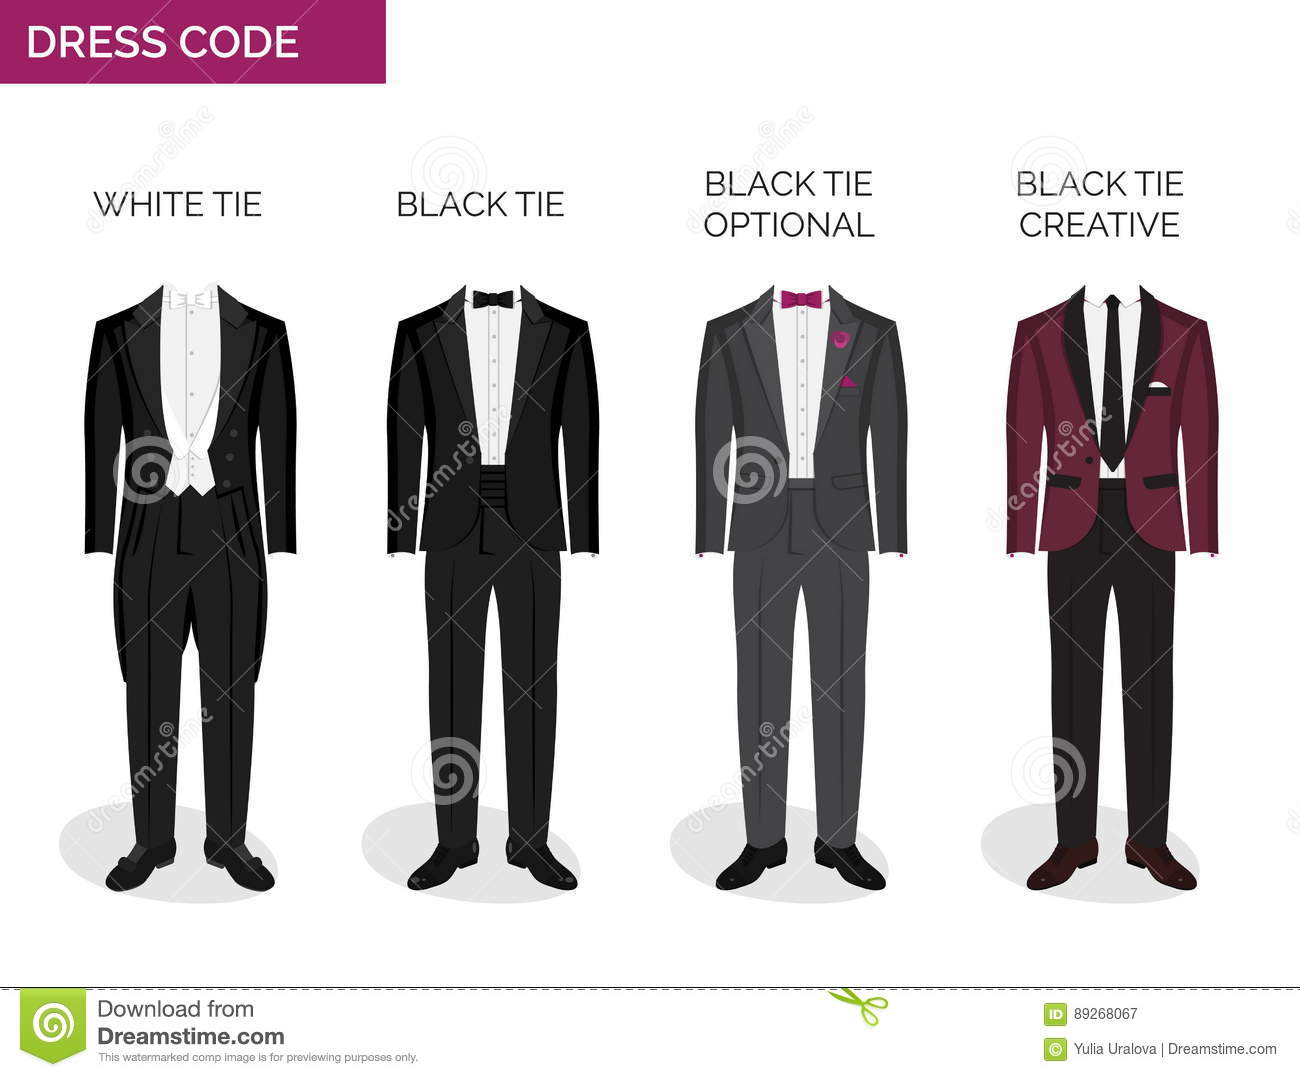 Dress code freestyle - Download Formal Dress Code